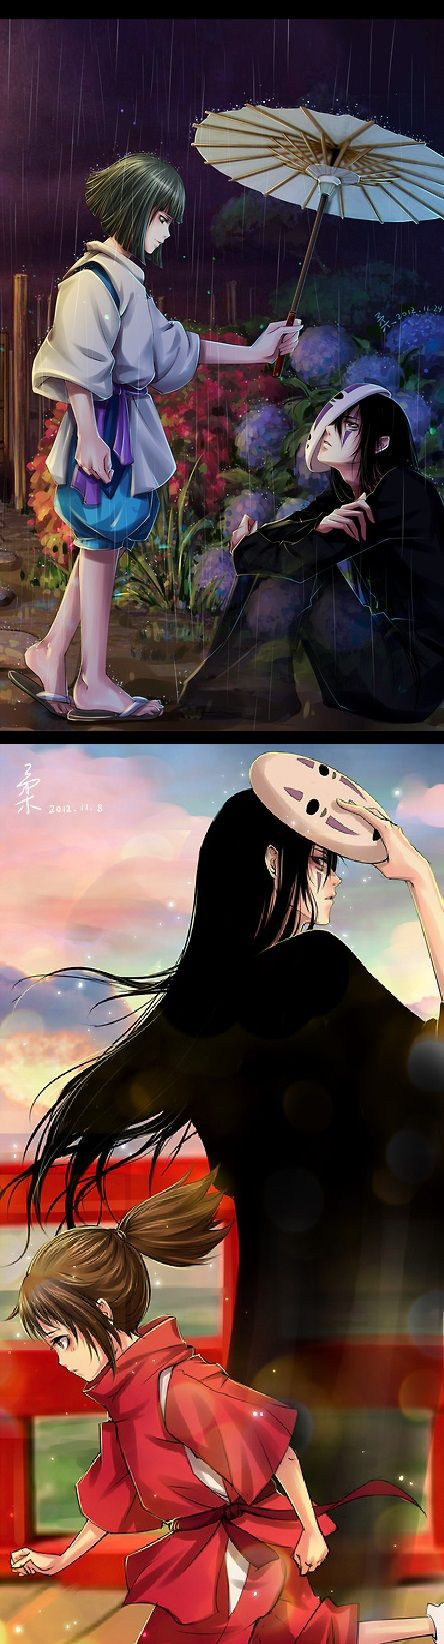 No face, Spirited away and Faces on Pinterest